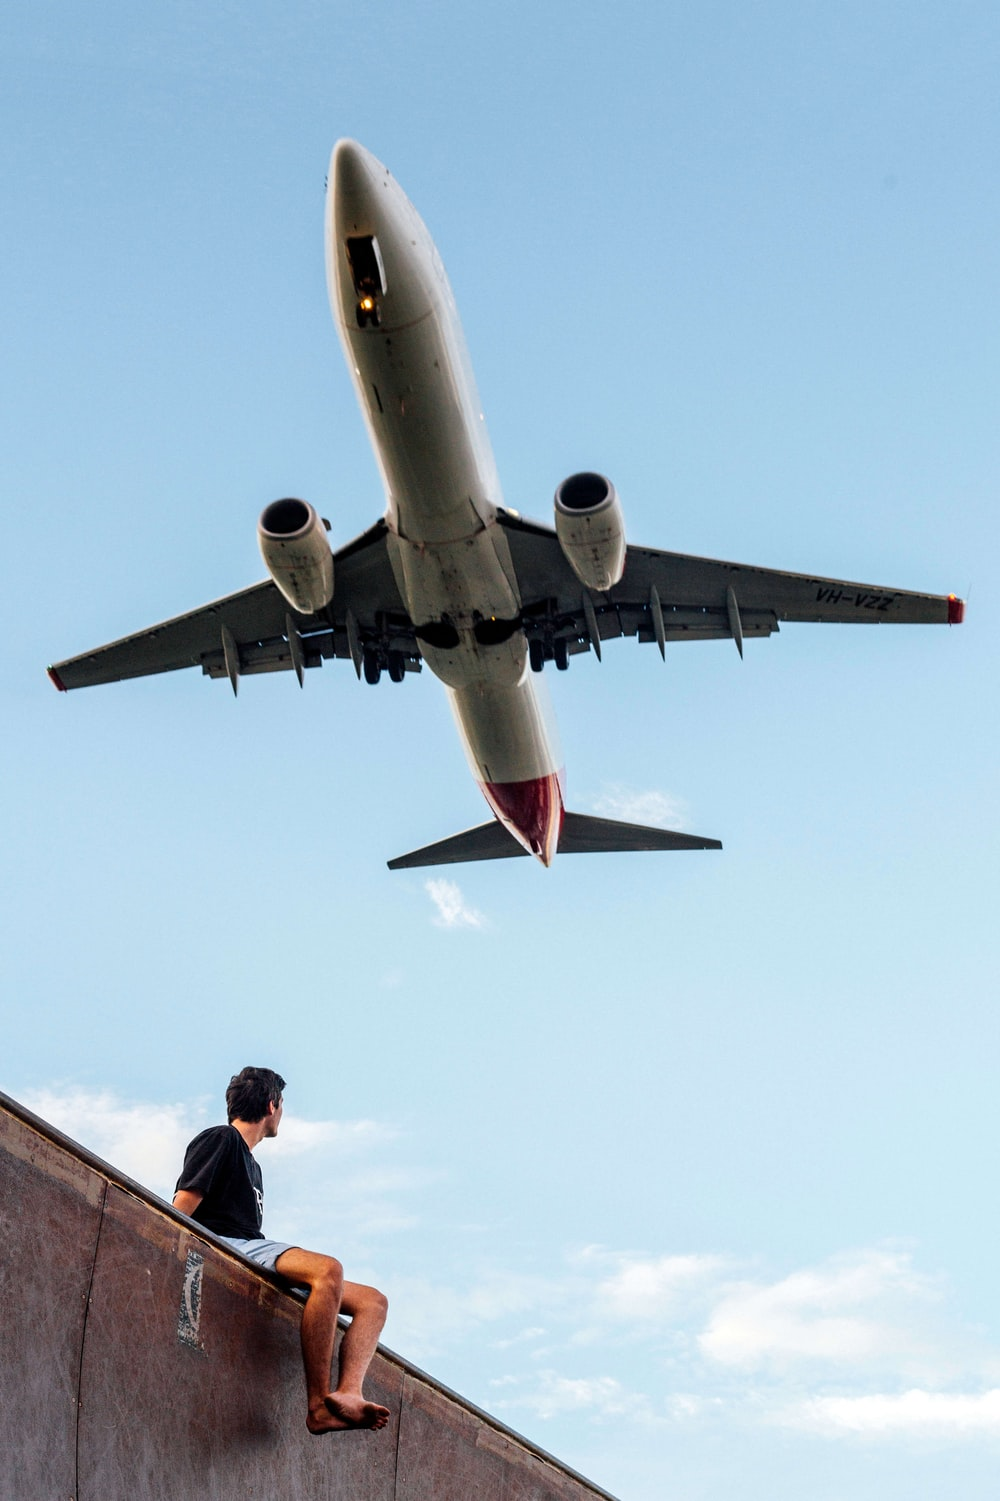 low angle photography of man wearing black shirt under white and gray airplane